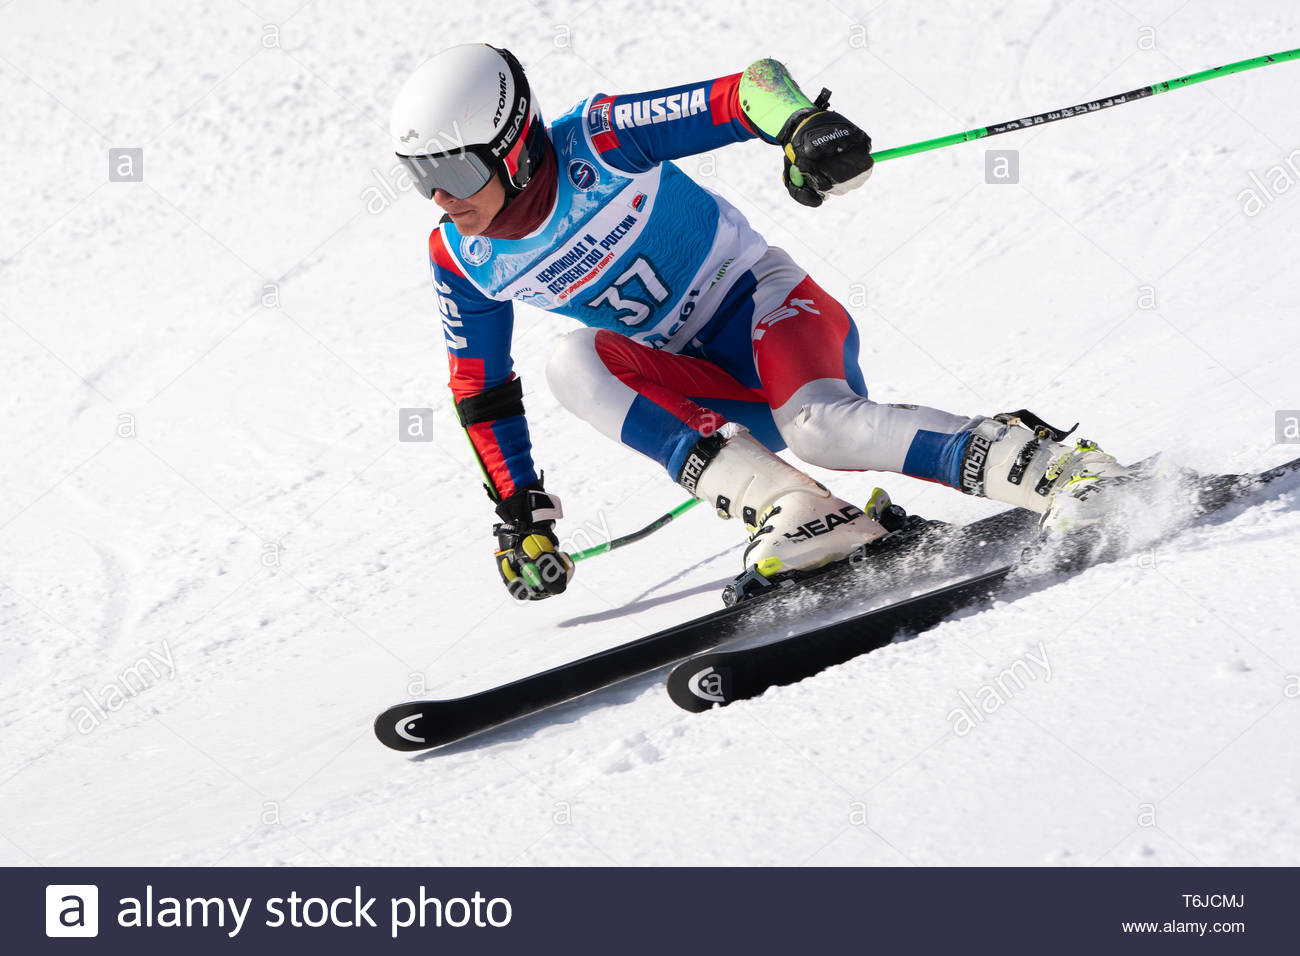 KAMCHATKA PENINSULA, RUSSIA - APR 1, 2019: Mountain skier Dzhioev Kirill (Magadan) skiing down mount slope. Russian Alpine Skiing Cup, International S - Stock Image